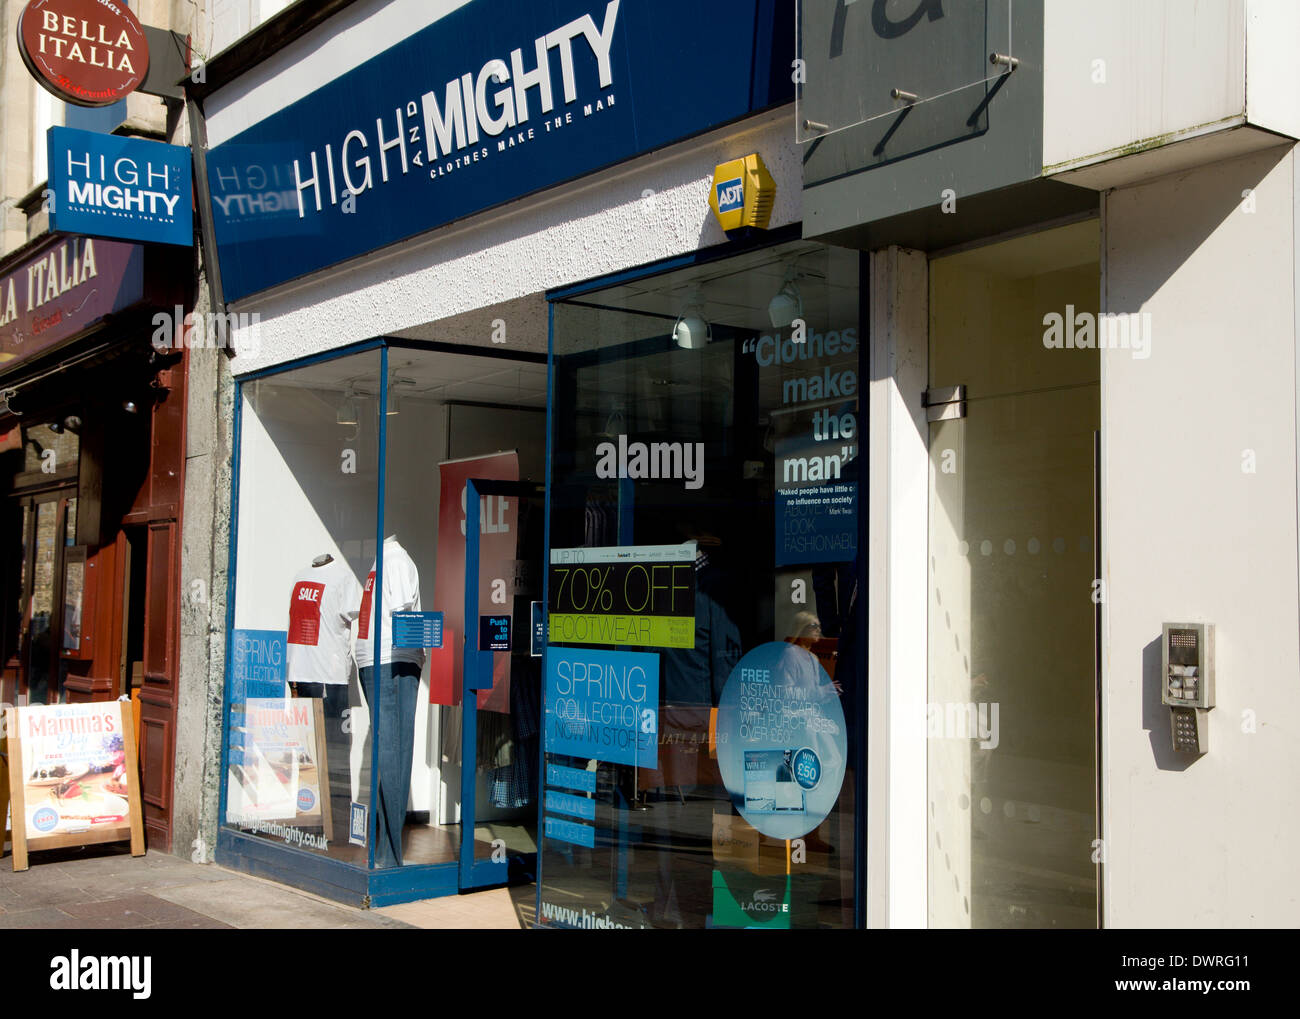 High & Mighty clothing shop for the larger man, High Street, Cardiff, Wales. - Stock Image